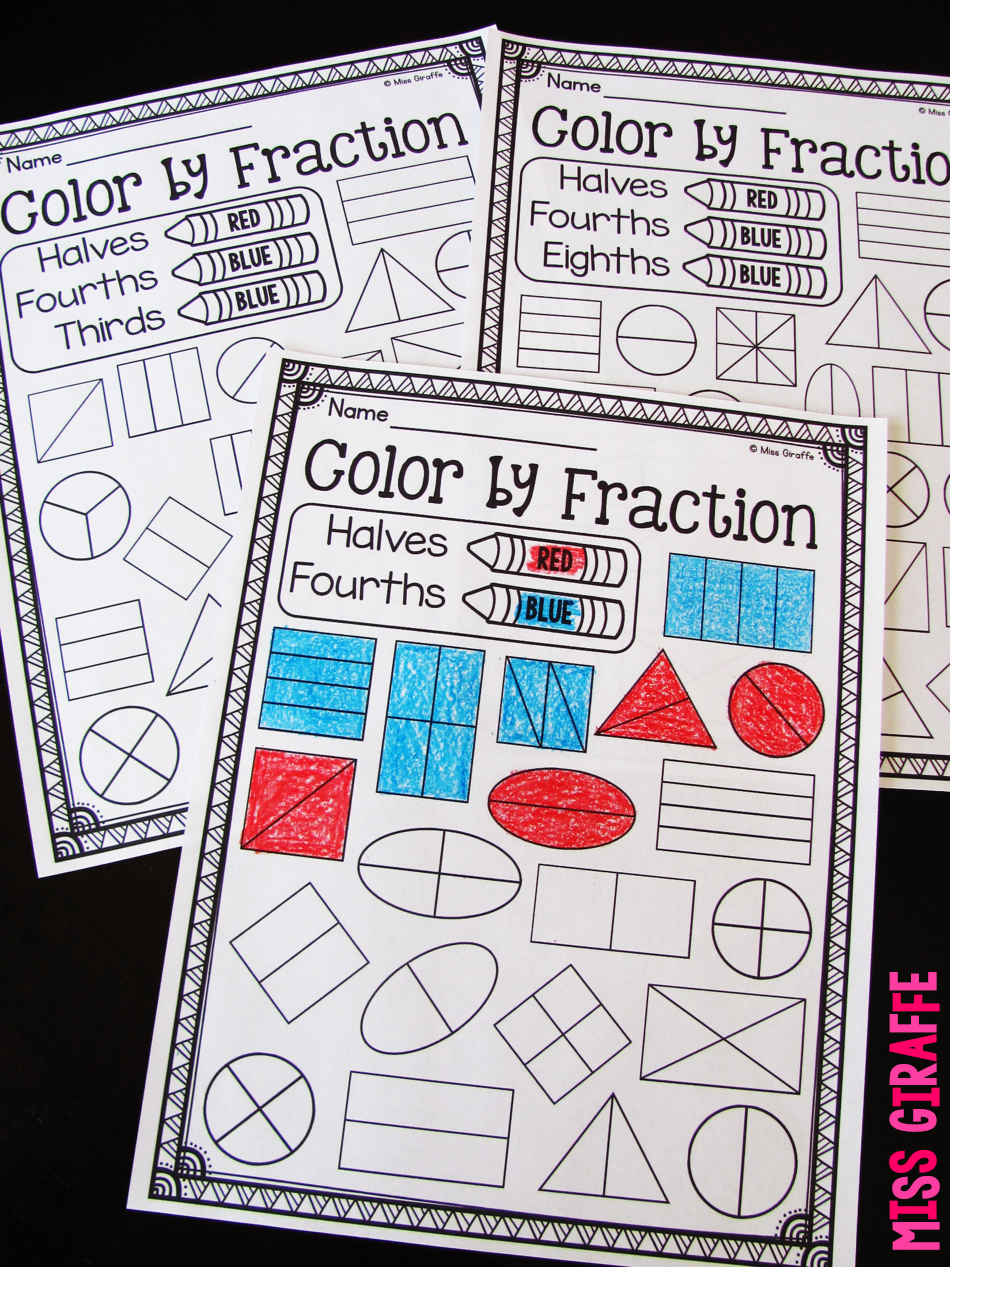 Fractions in first grade are so much more fun when coloring is involved! Coloring by fourths, halves, thirds, and more fun fractions activities on this post! Definitely save this!